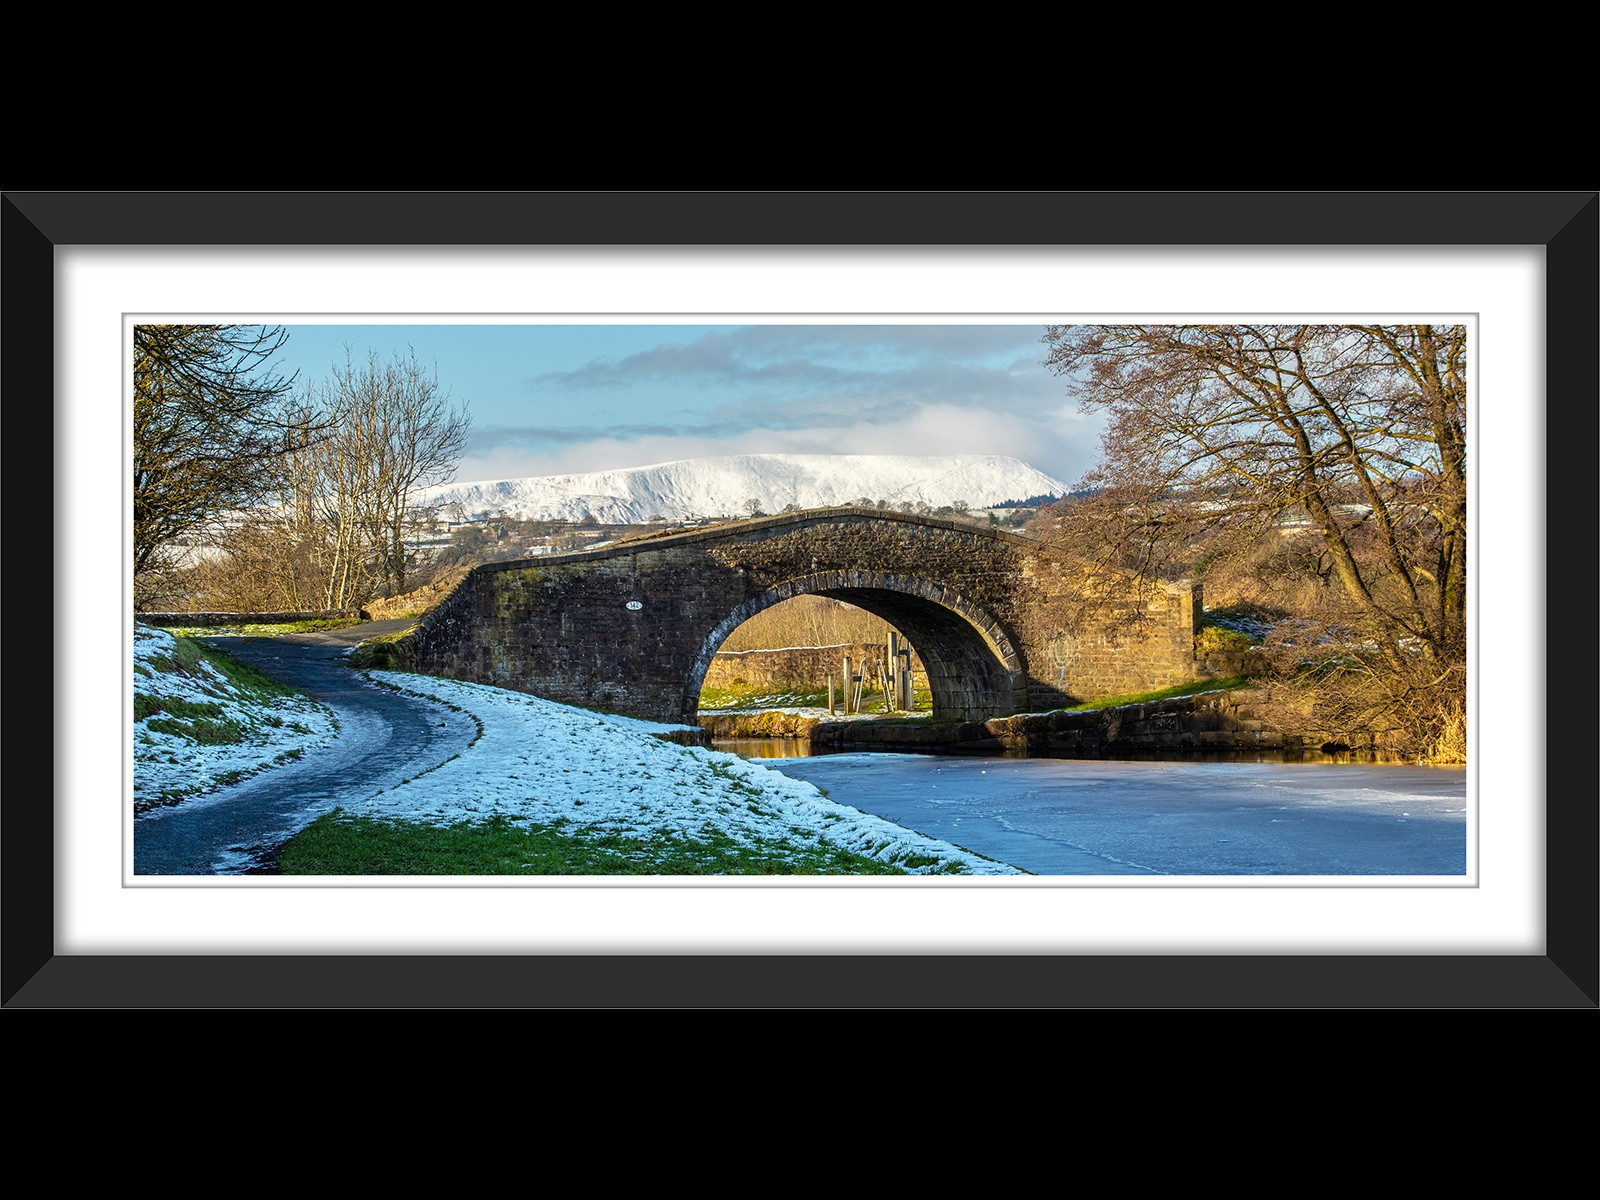 1.Winter view of Pendle Hill